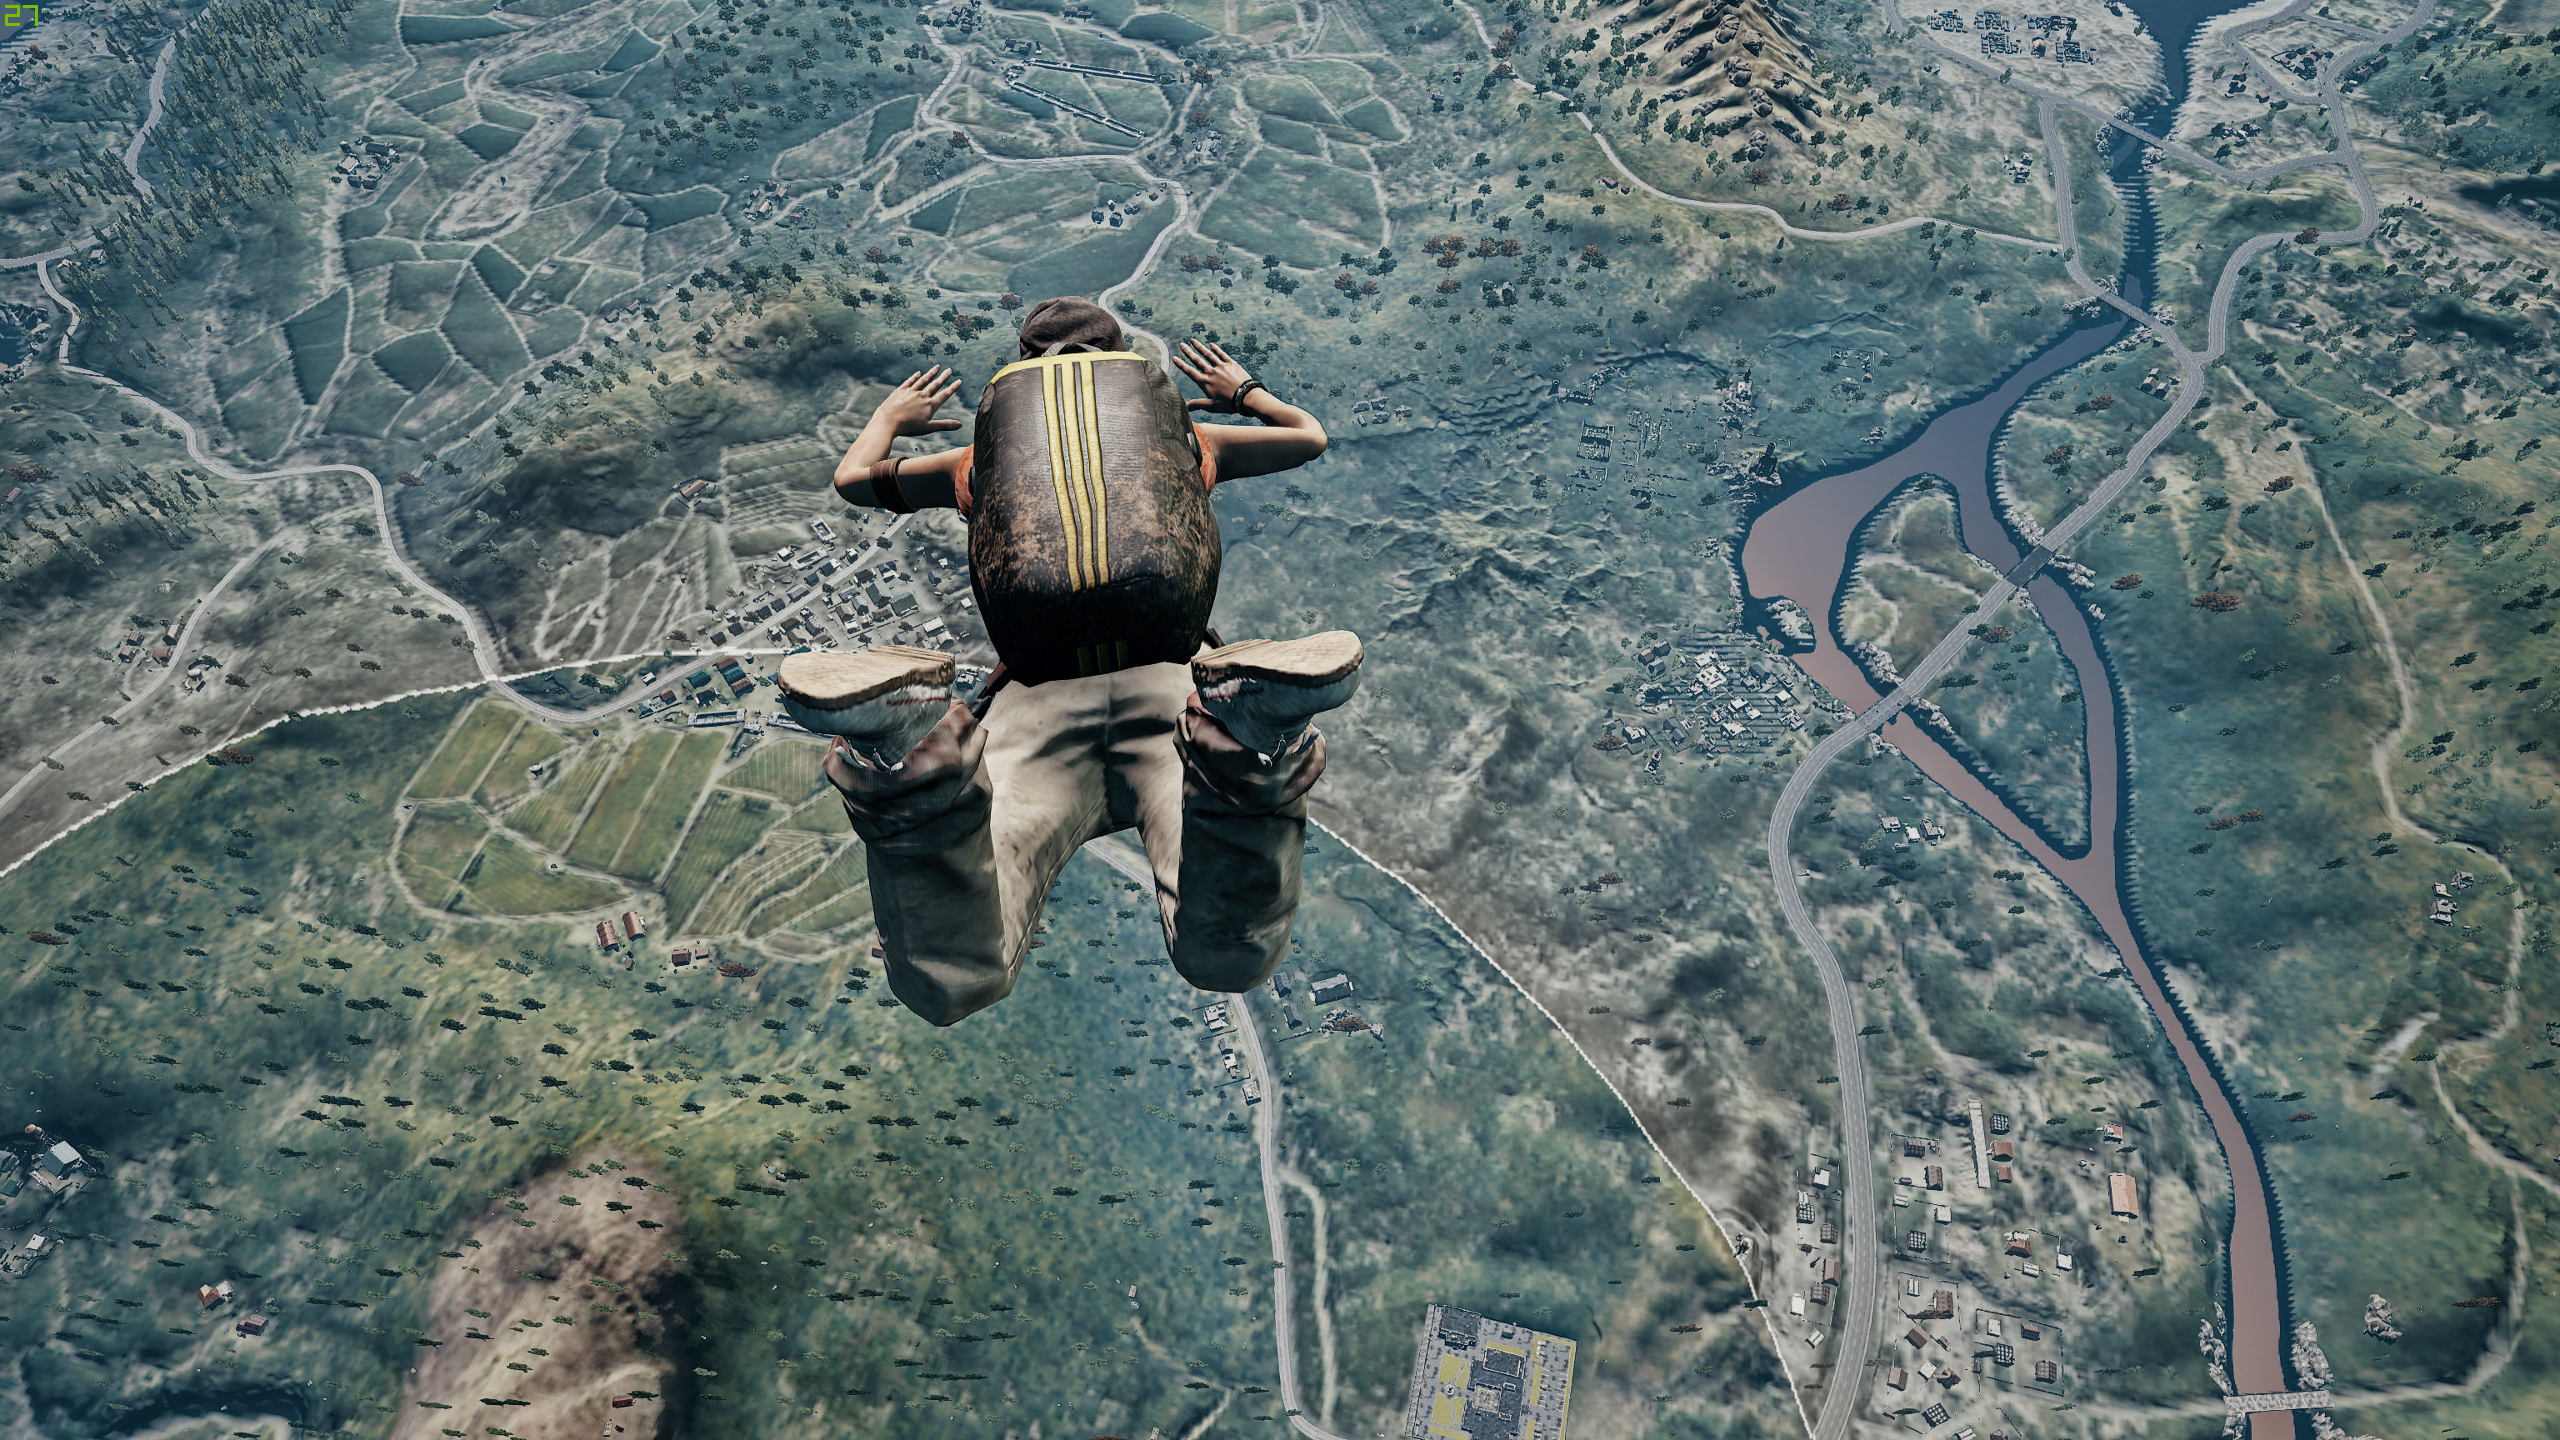 1920x1080 Pubg Characters 4k Laptop Full Hd 1080p Hd 4k: 1920x1080 Pubg Jump From Plane 4k Laptop Full HD 1080P HD